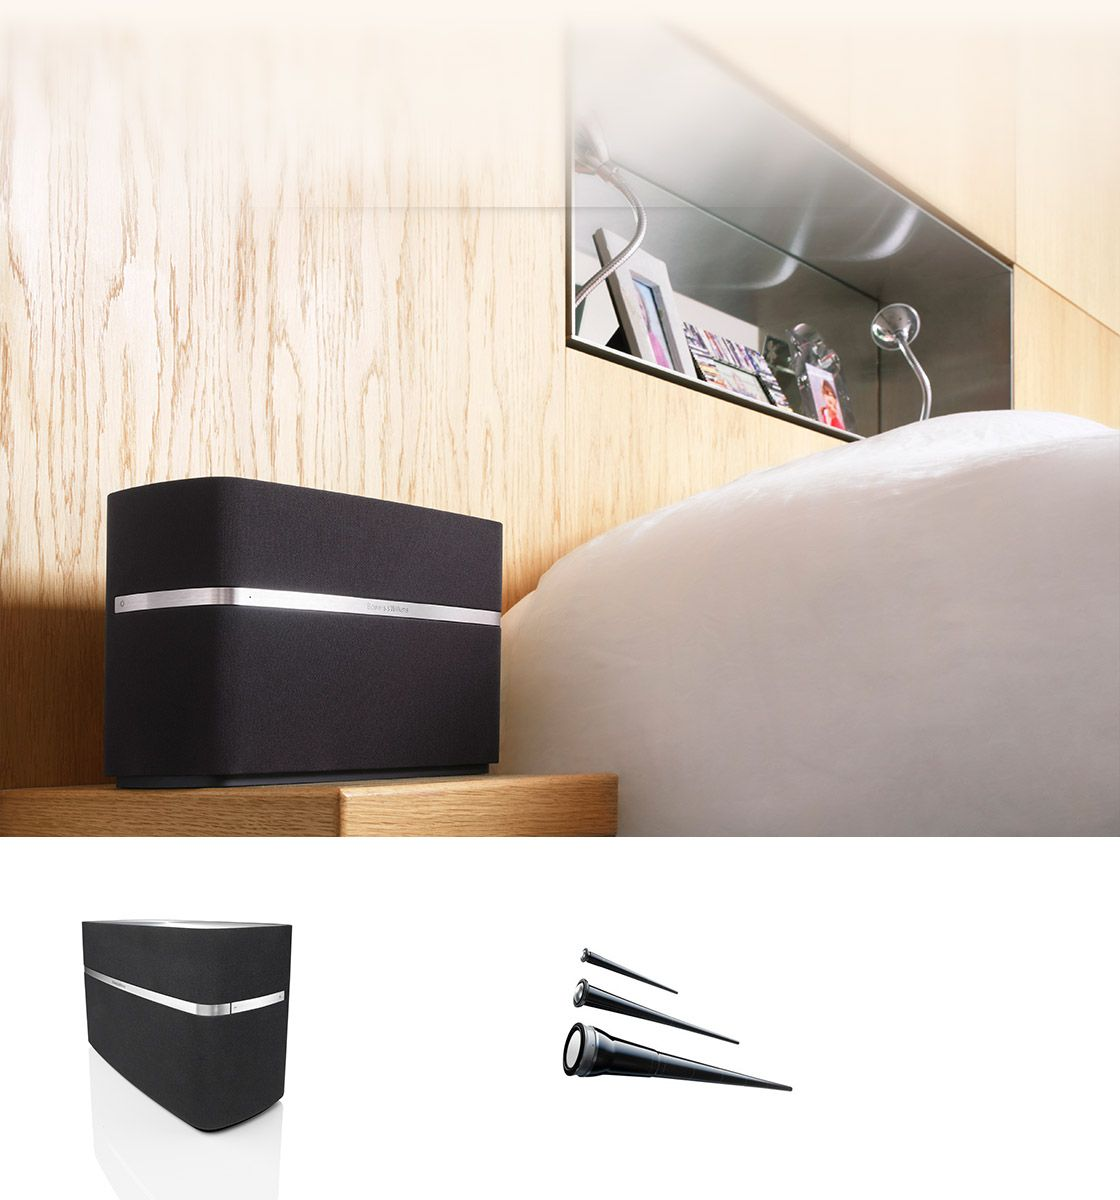 Strange A5 Wireless Speaker In Bedroom Tech And Or Product Music Download Free Architecture Designs Rallybritishbridgeorg